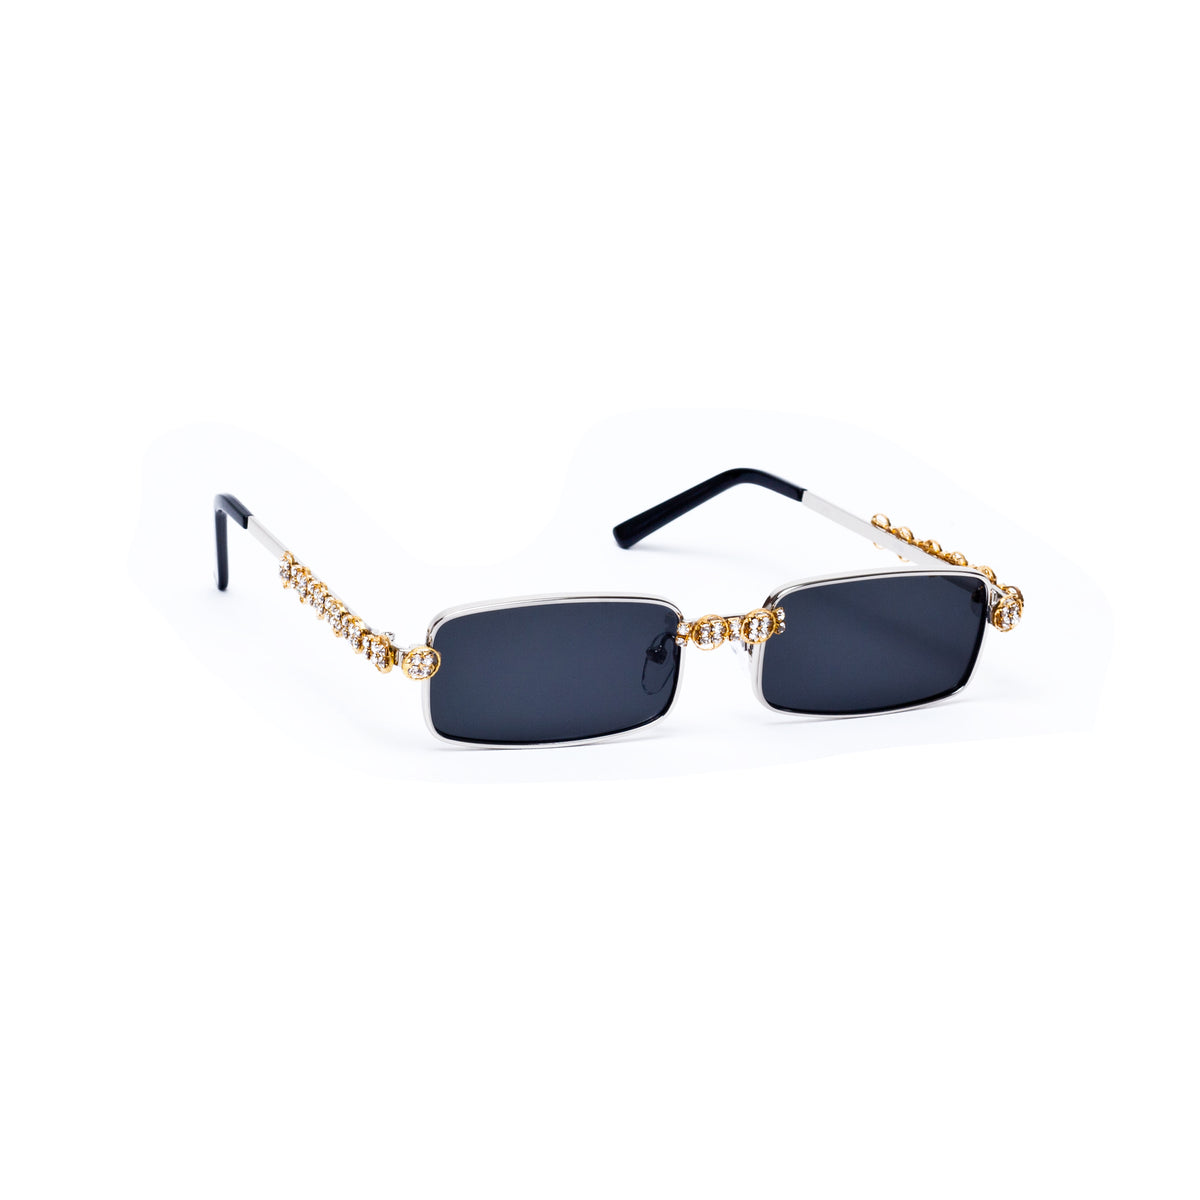 All About The Benjamins - Cocoa Luxe  SUNNIES + OPTICS Sunglasses Collection- NRODA